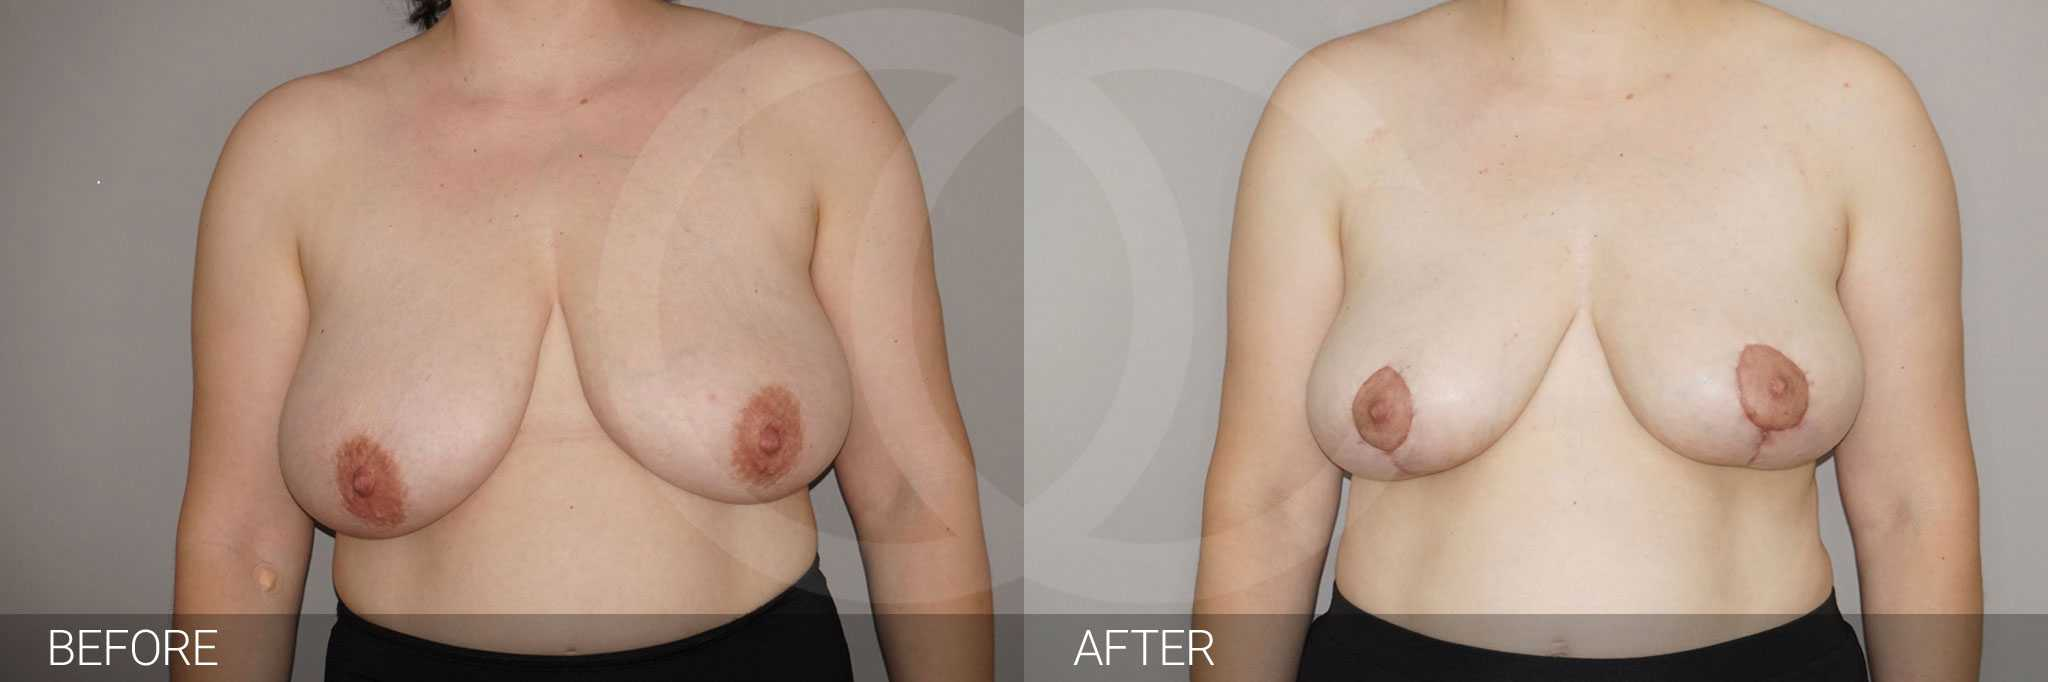 Breast Reduction with liposuction ante/post-op I